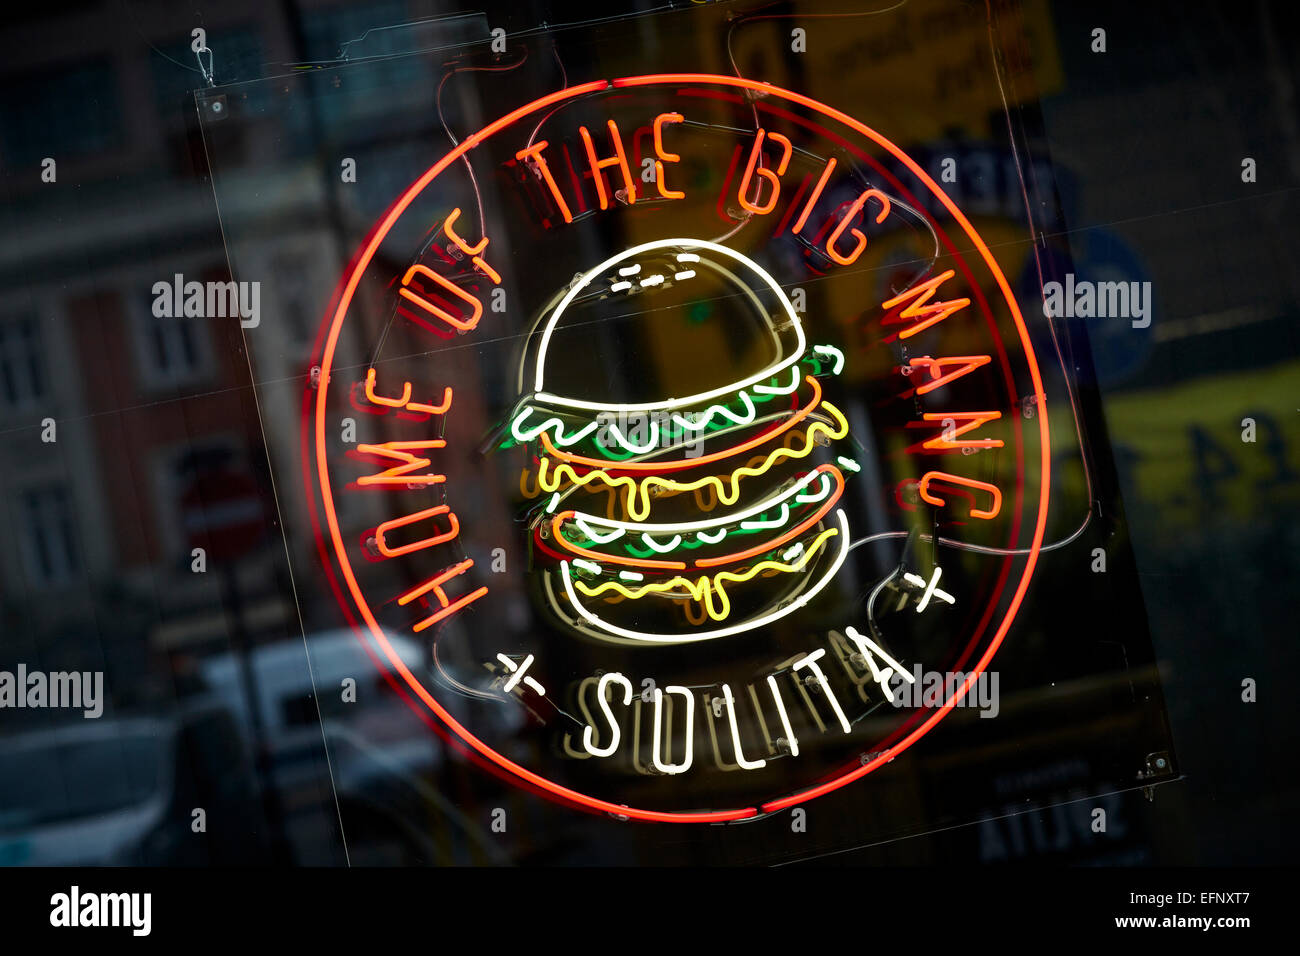 Solita, Home of the big manc sign in the Northern Quarter manchester Uk - Stock Image